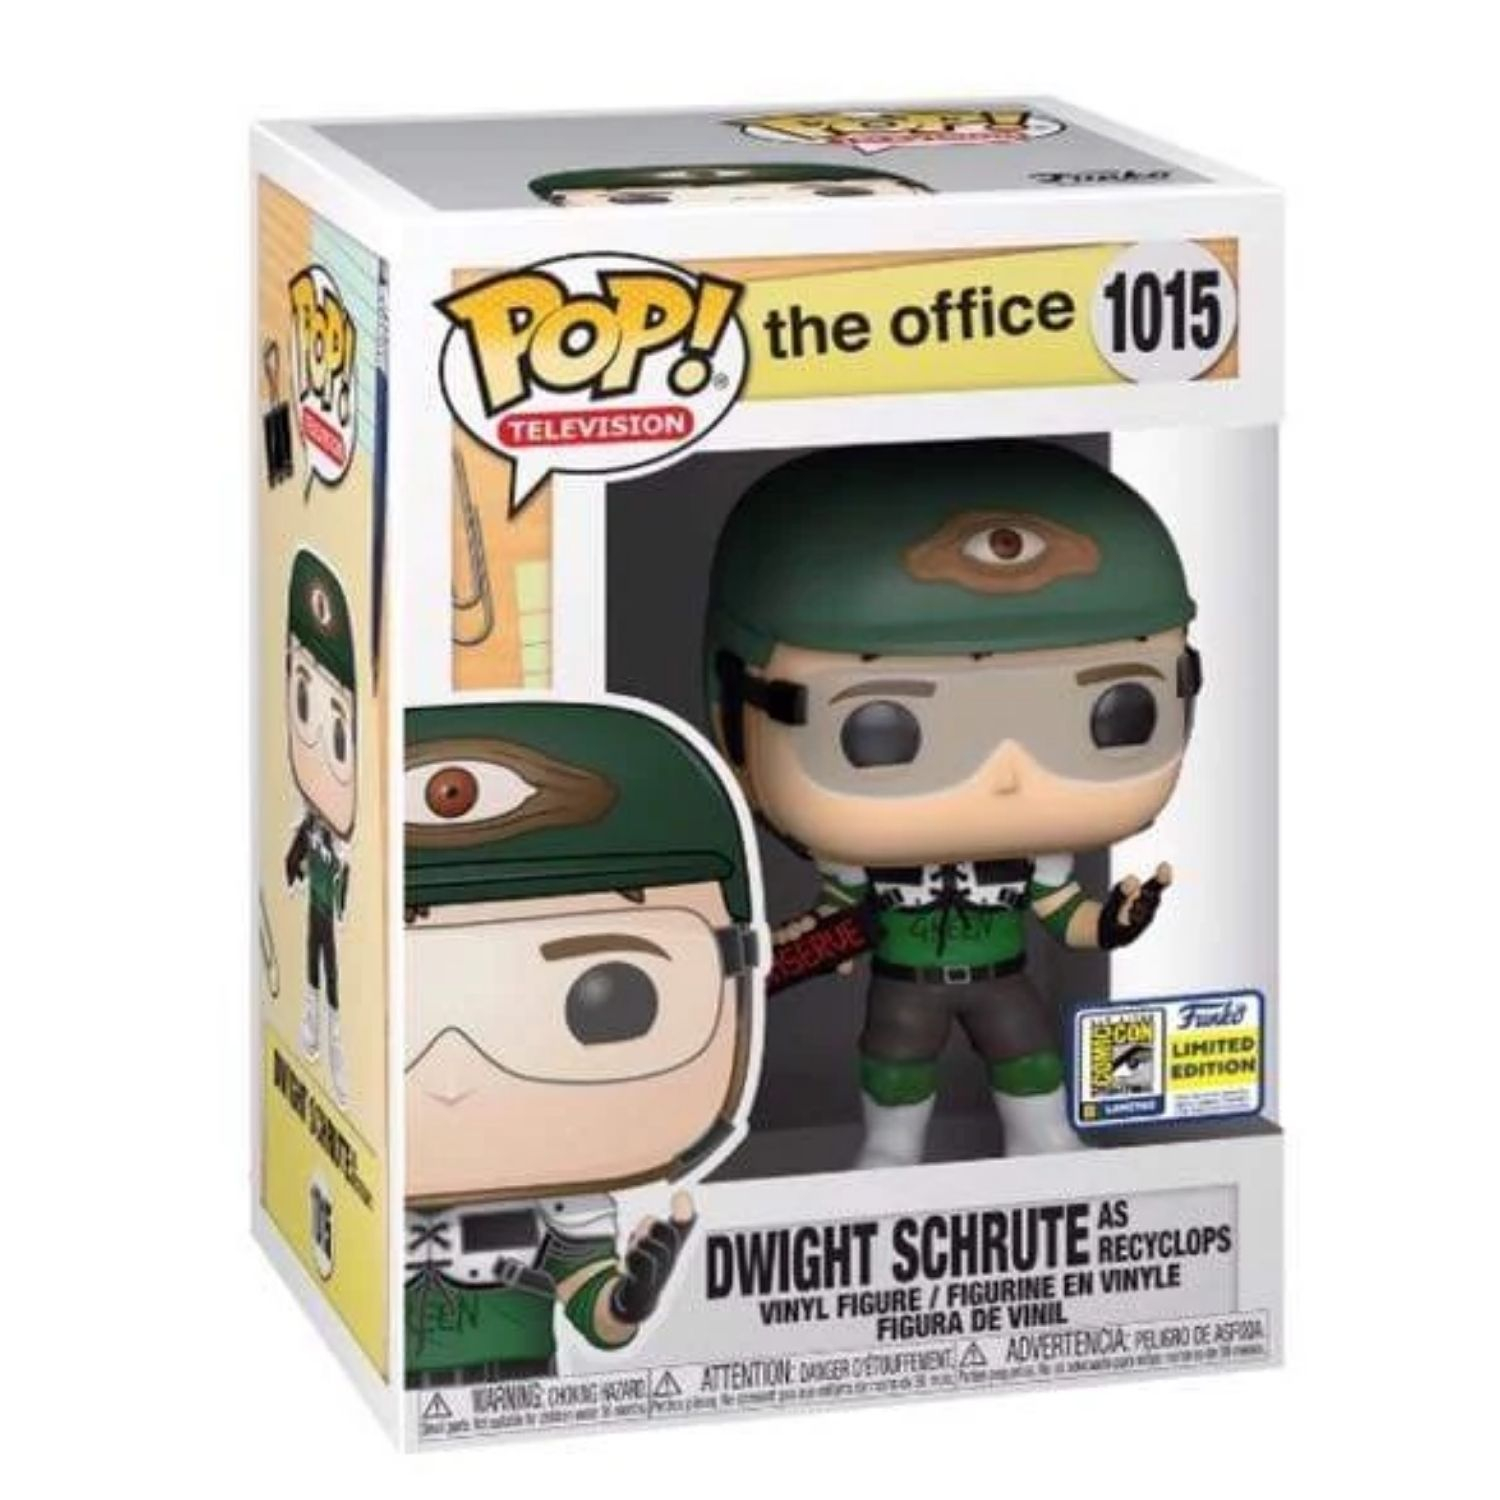 Funko Pop Dwight Schrute as Recyclops #1015 The Office  - Game Land Brinquedos